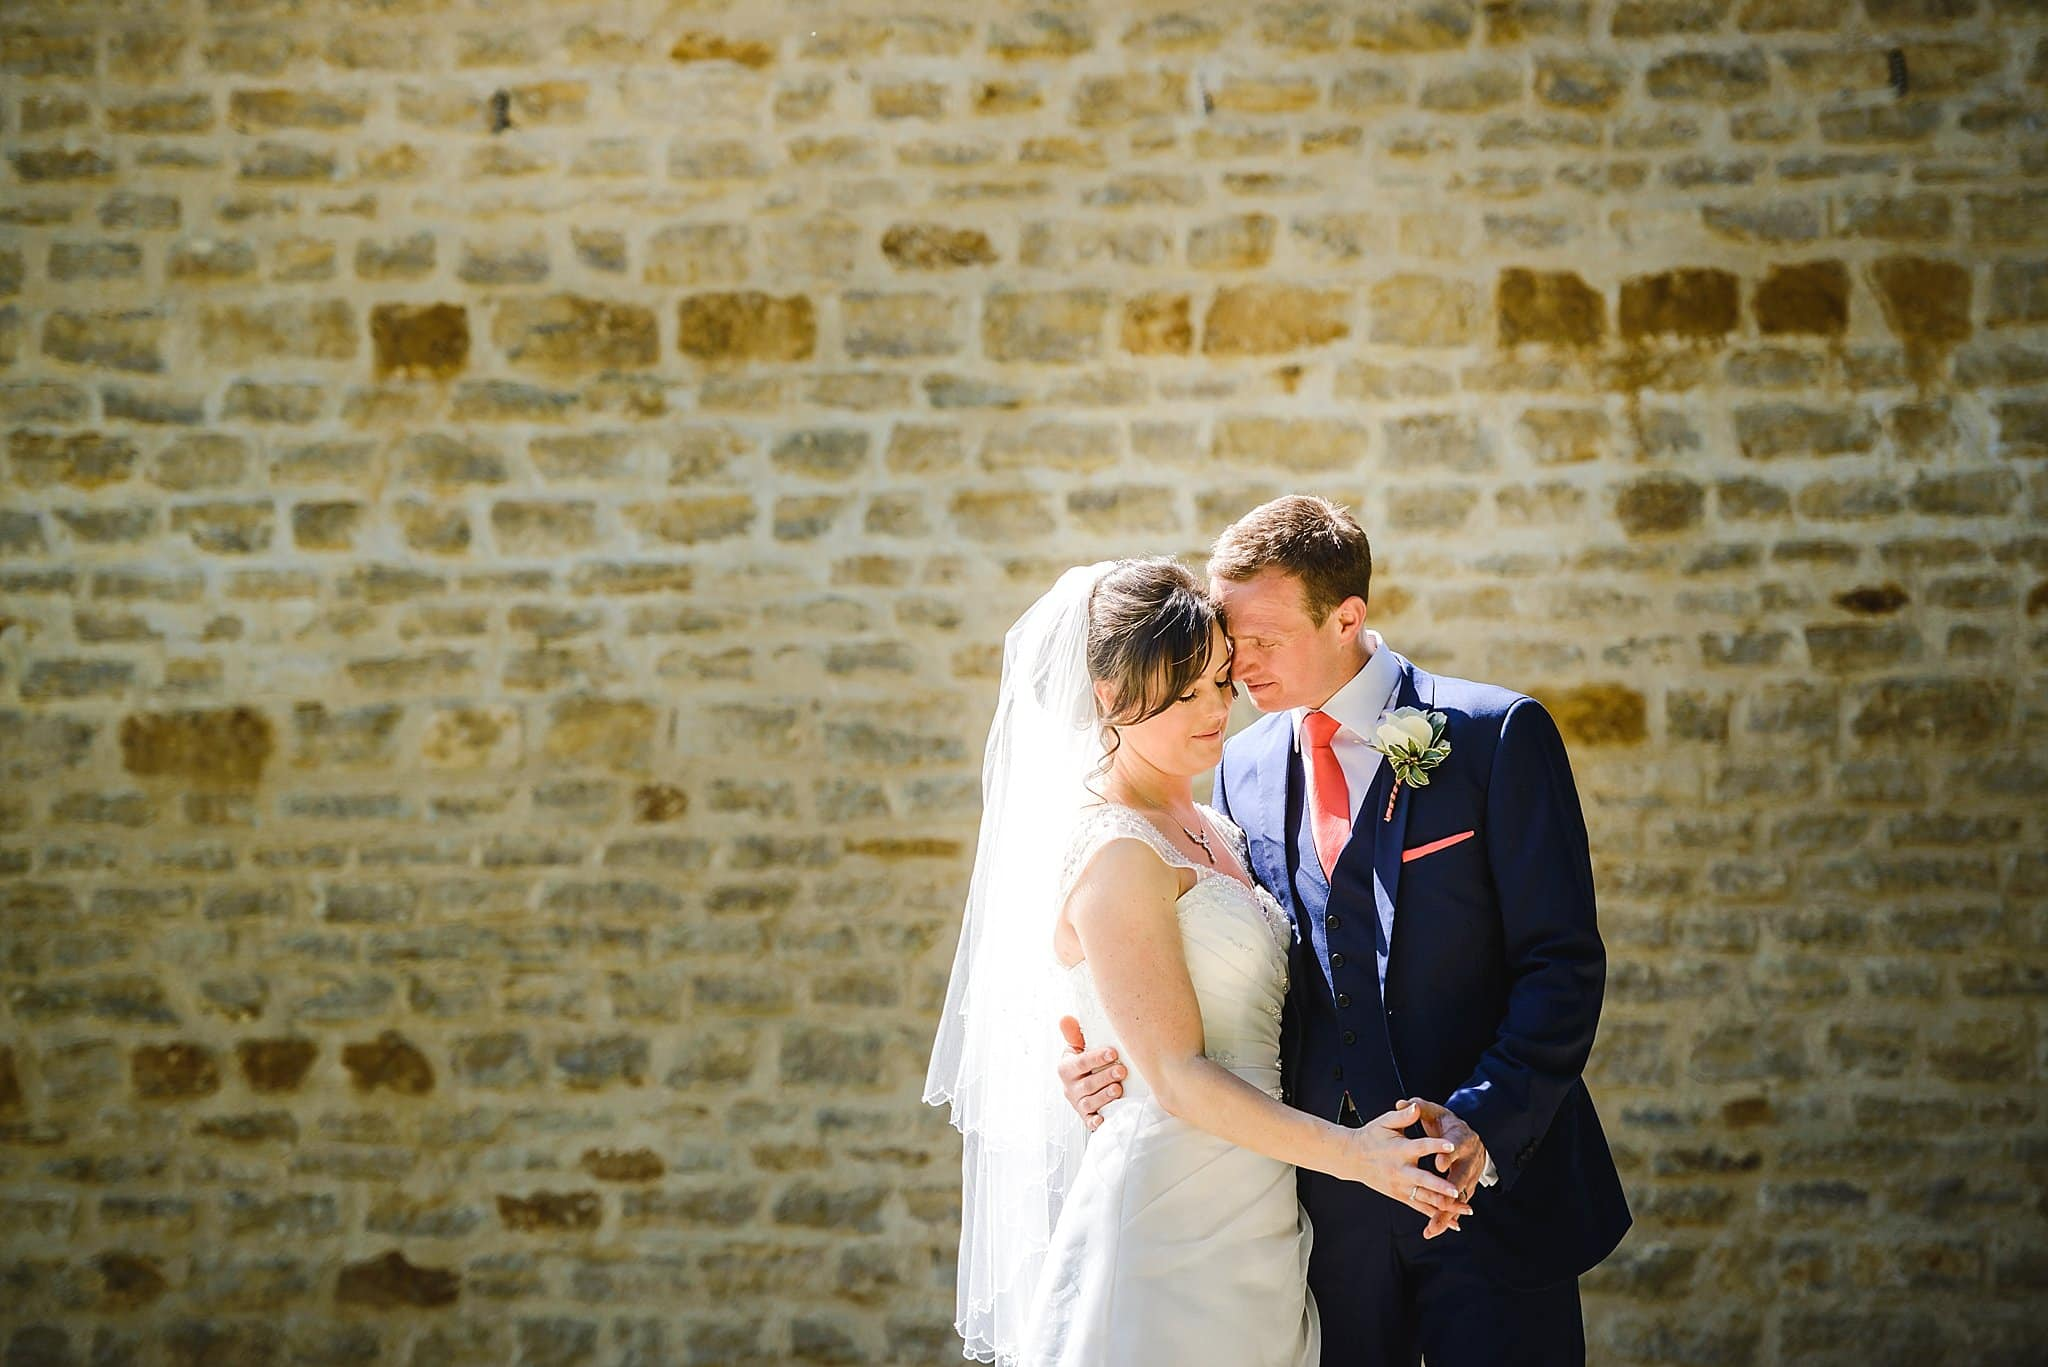 Bride & groom holding hands with a brick backdrop in the grounds of The Hare & Hounds wedding venue Tetbury